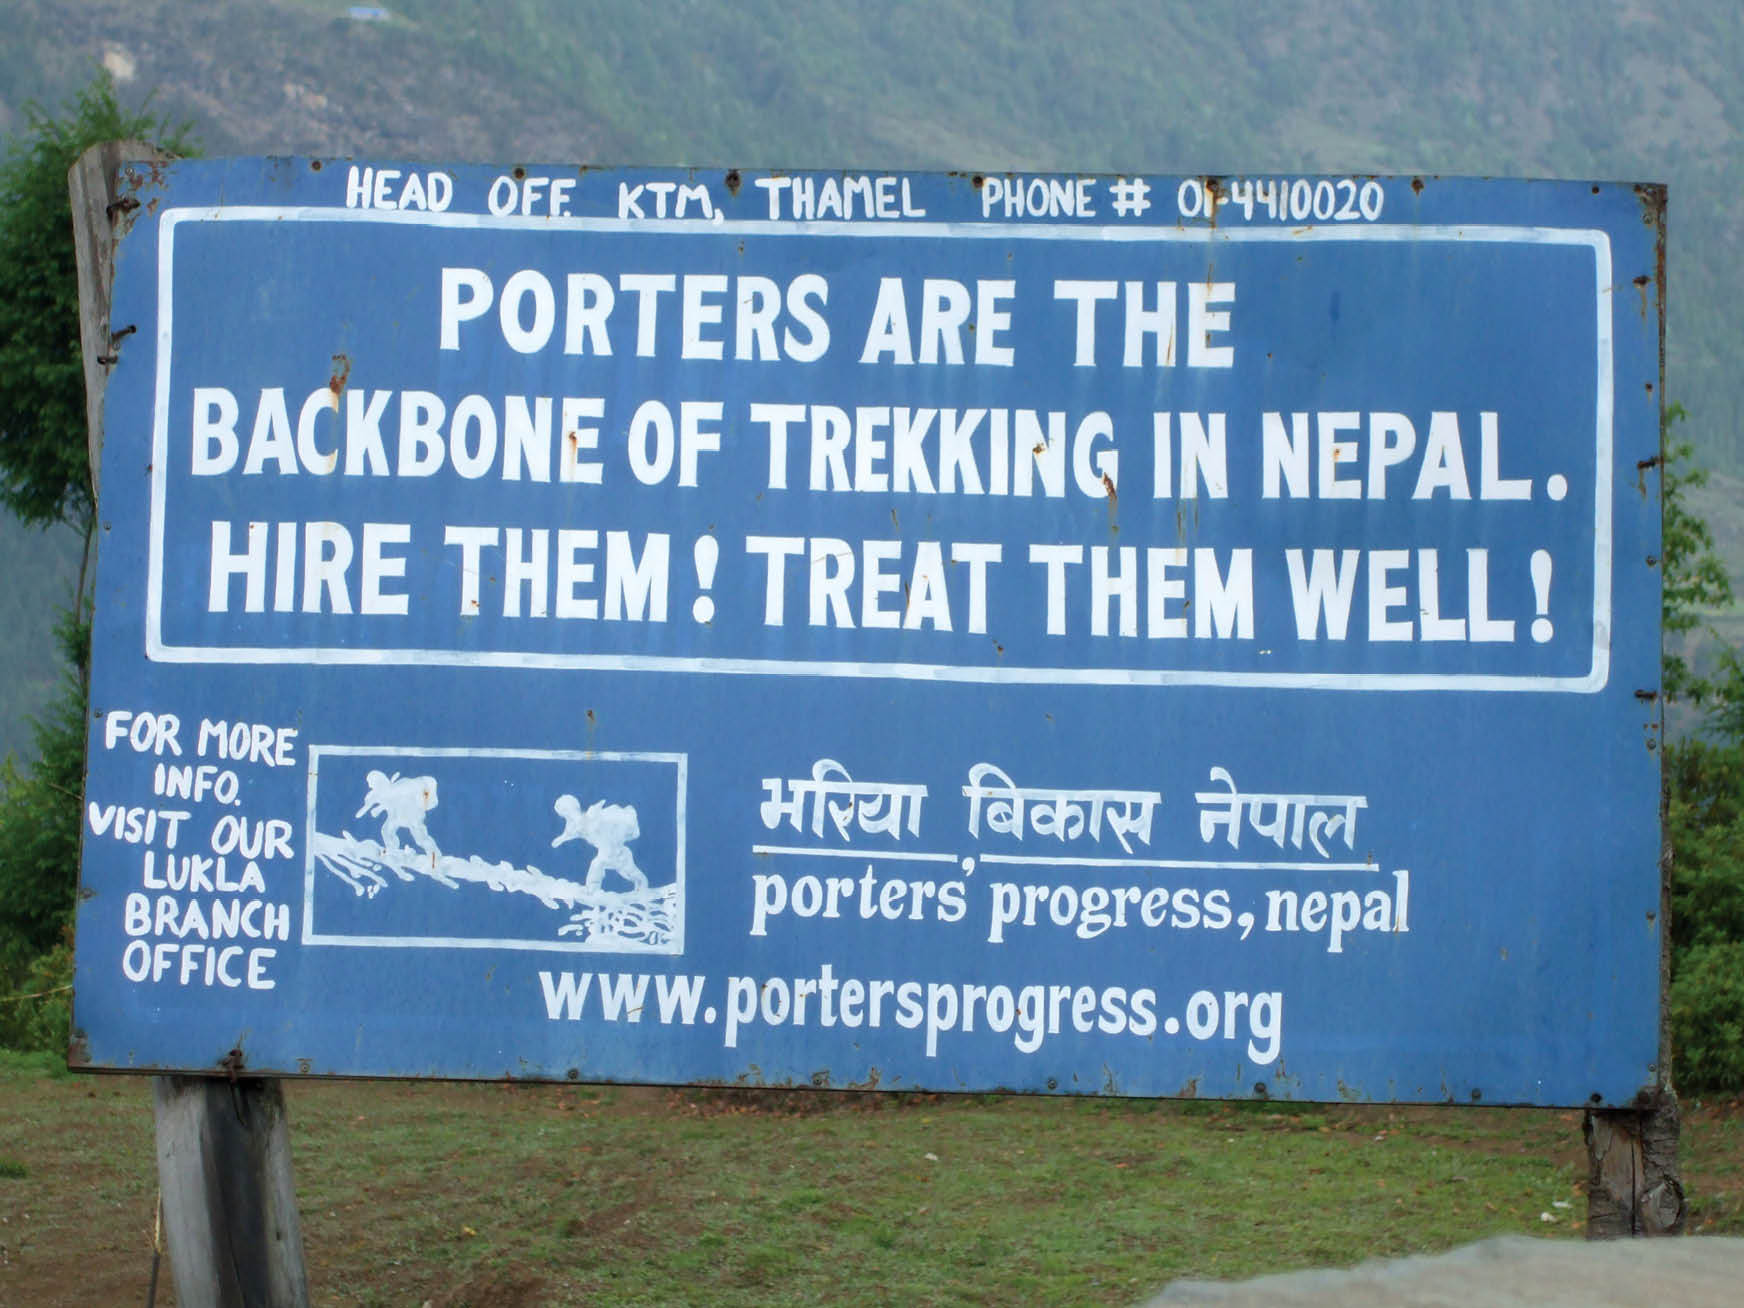 Sign for trekkers in Nepal that raises awareness of rights for sherpas and porters